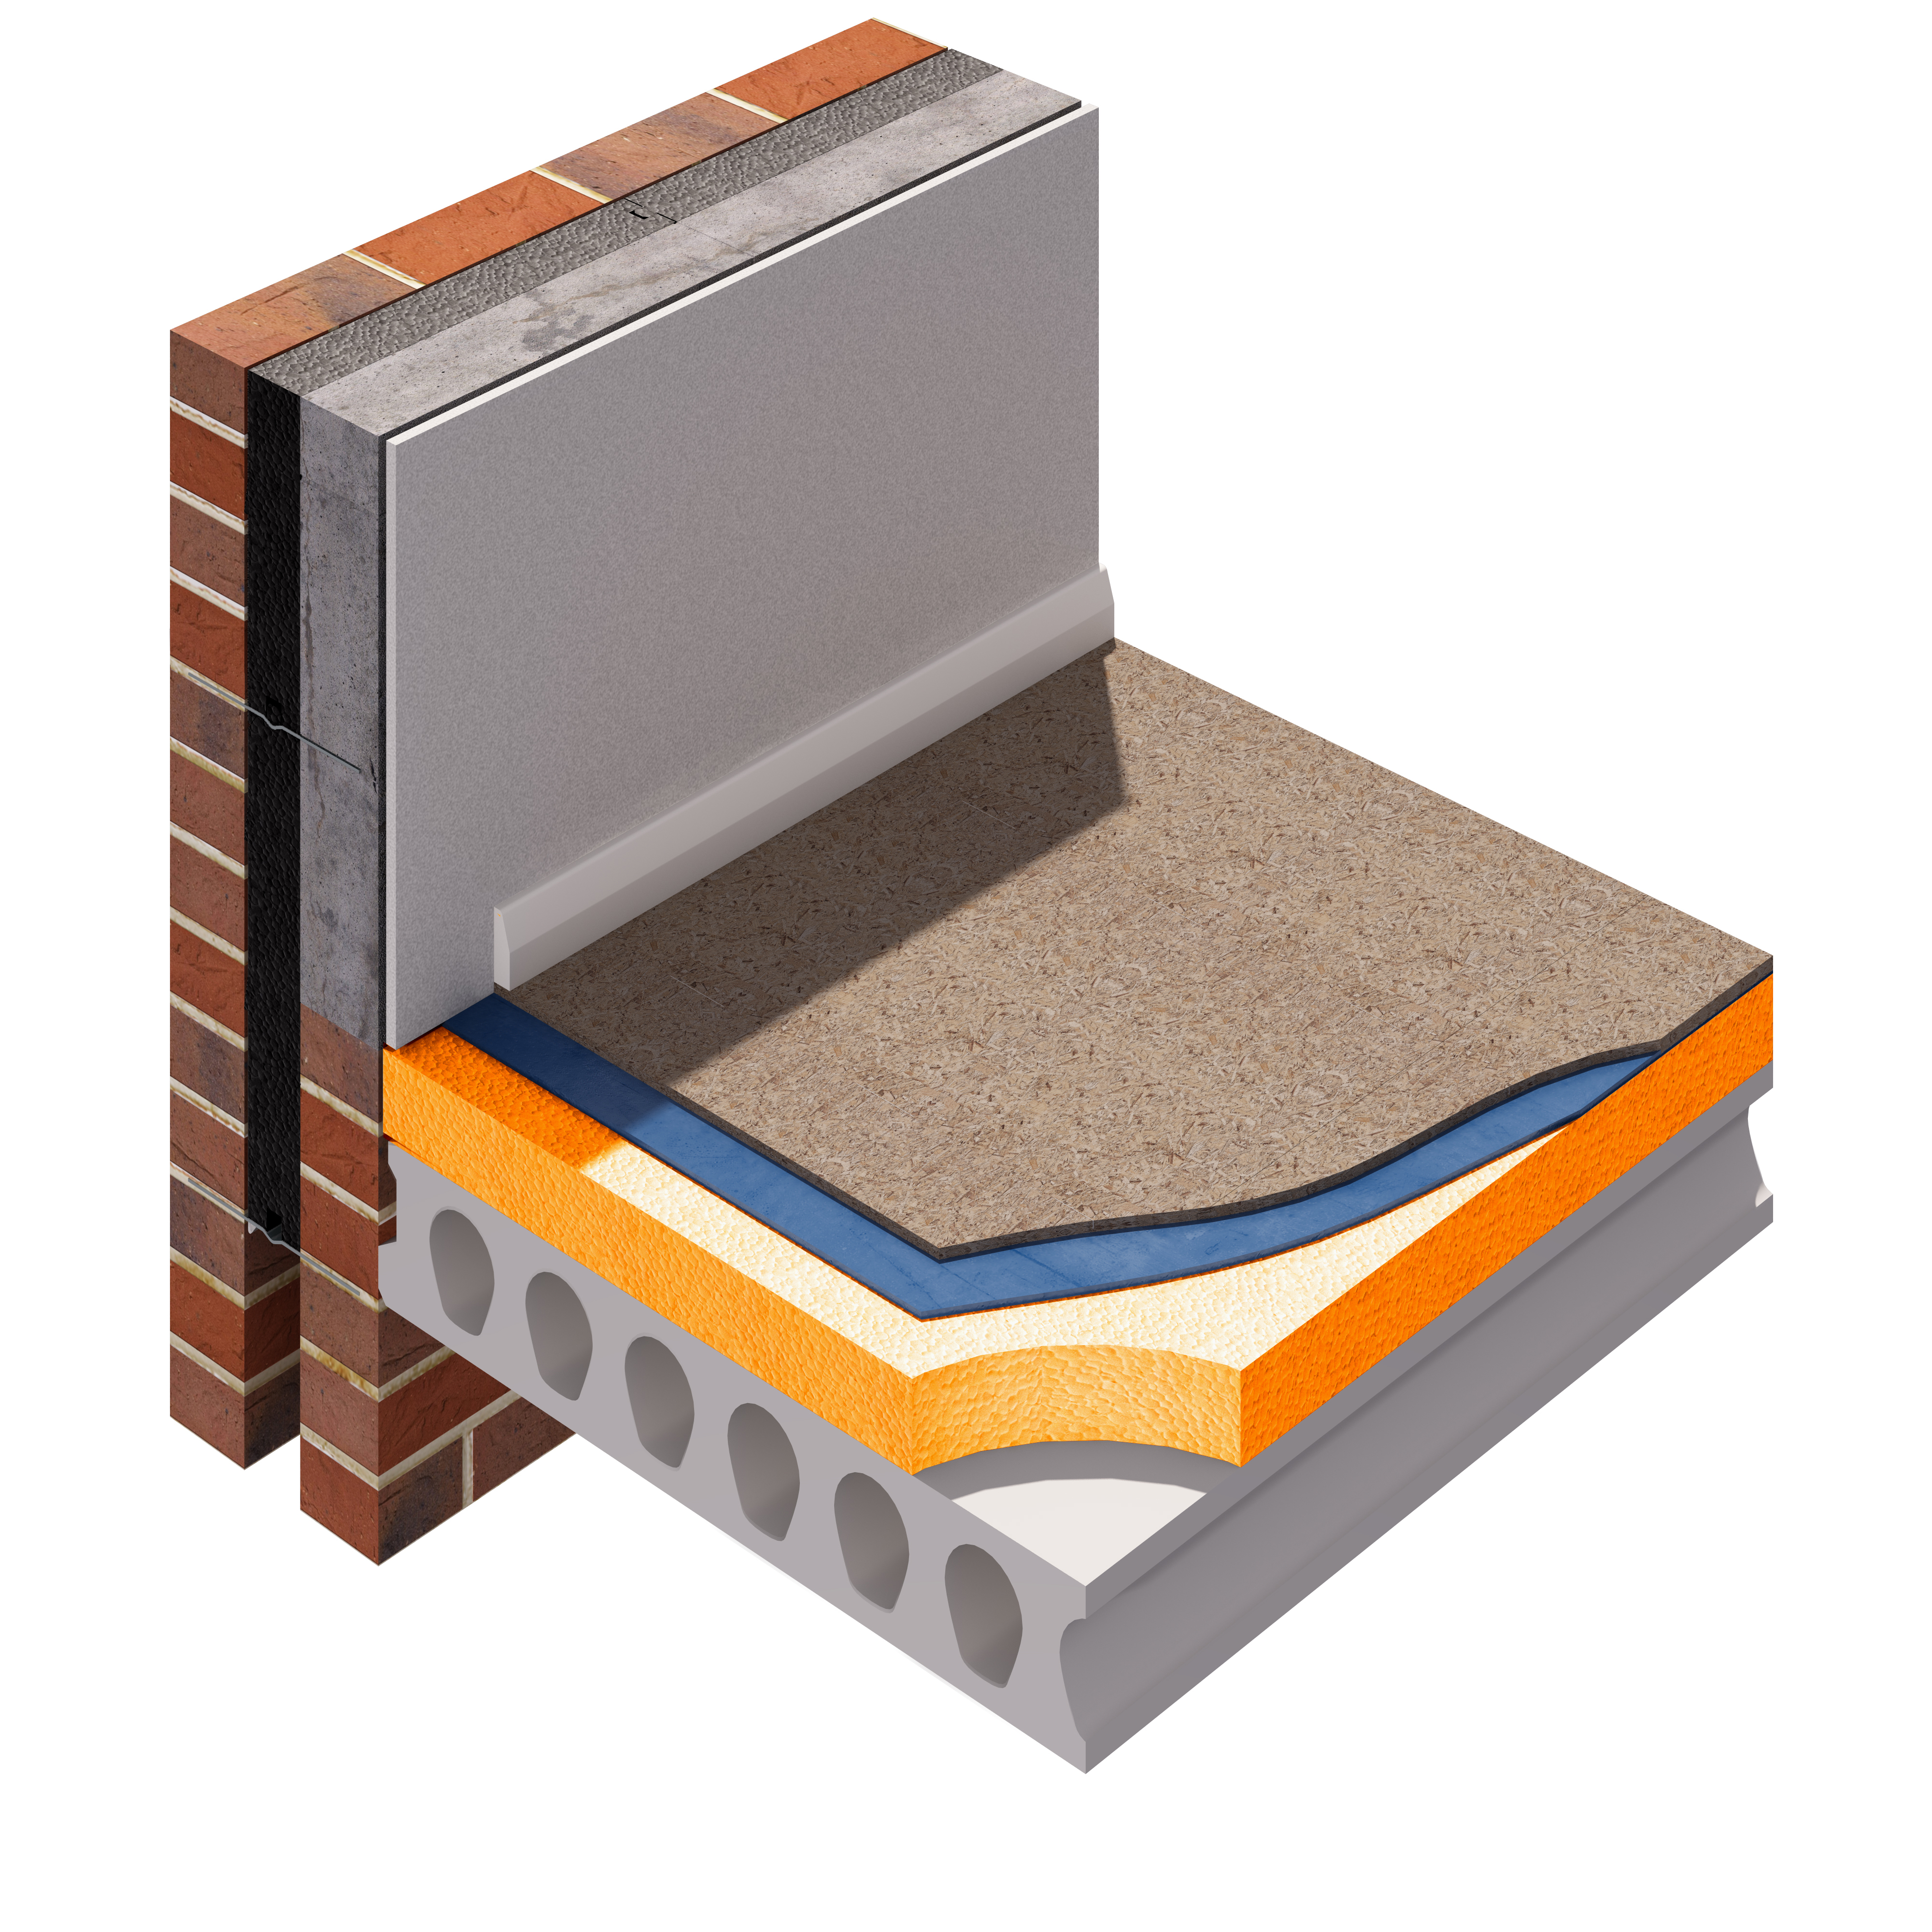 Hollow Core Concrete Floor : Insulation for ground floors jablite